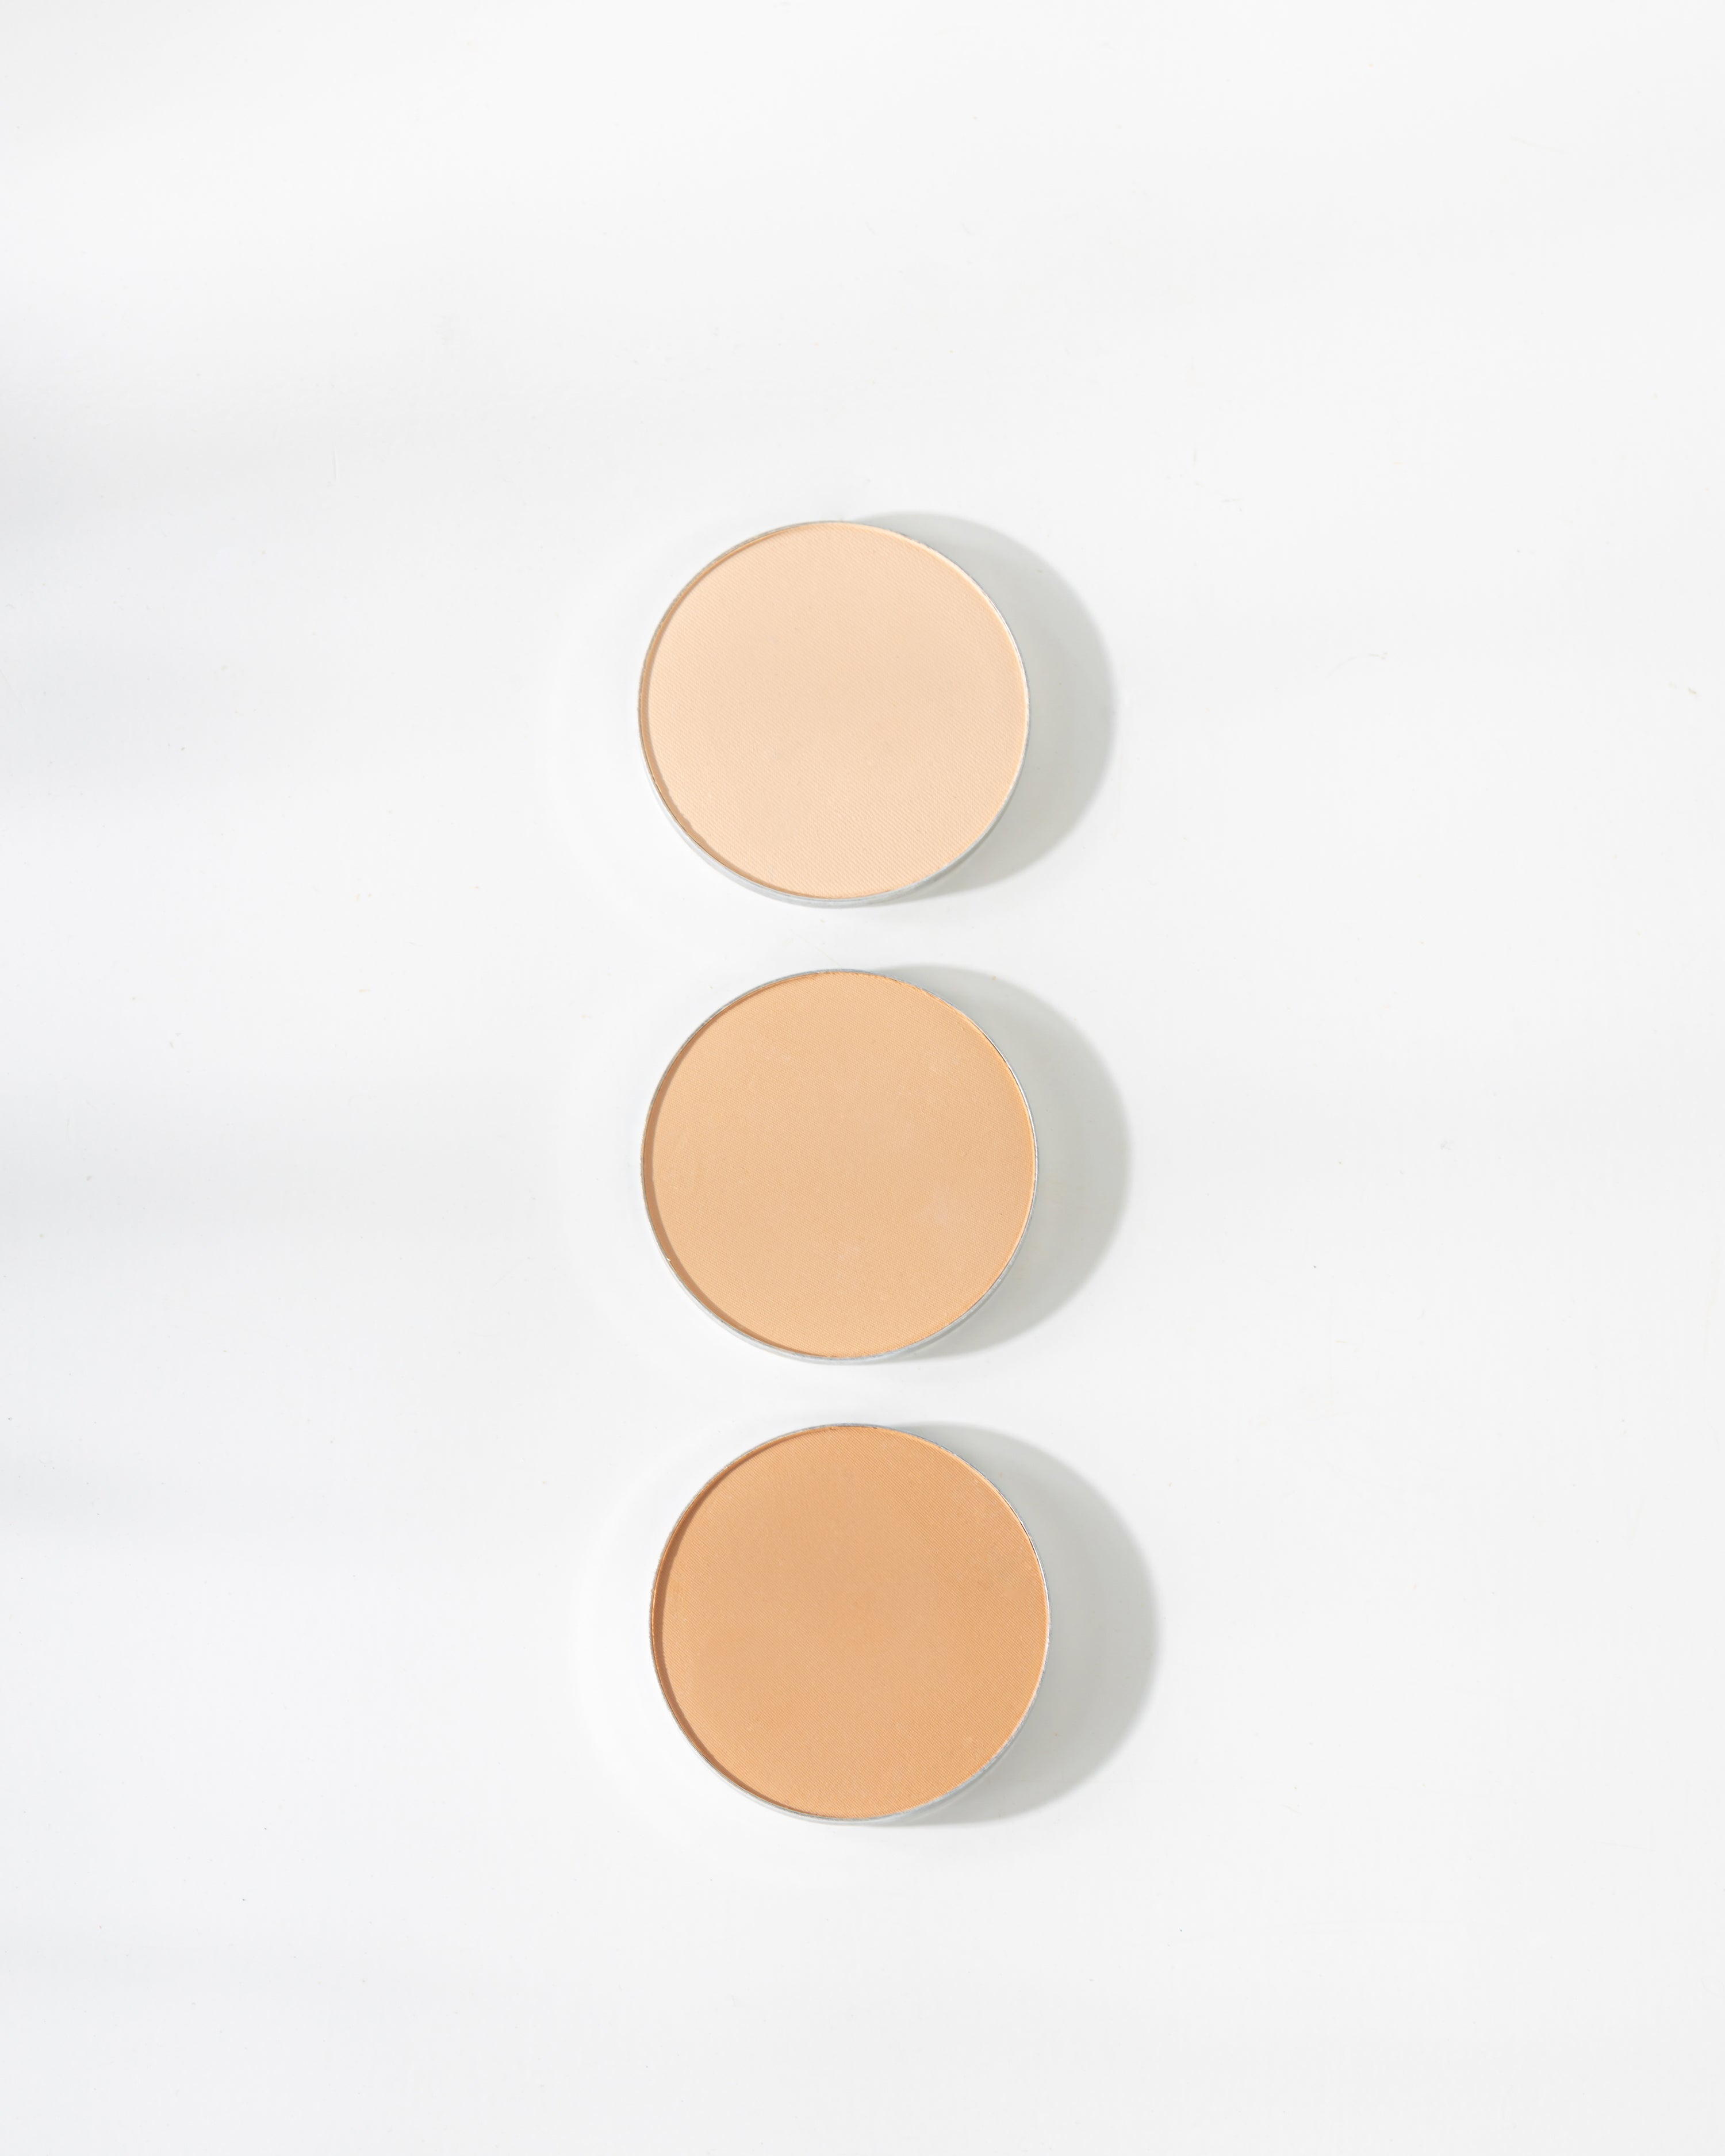 The Realest Lightweight Compact Powder in Light